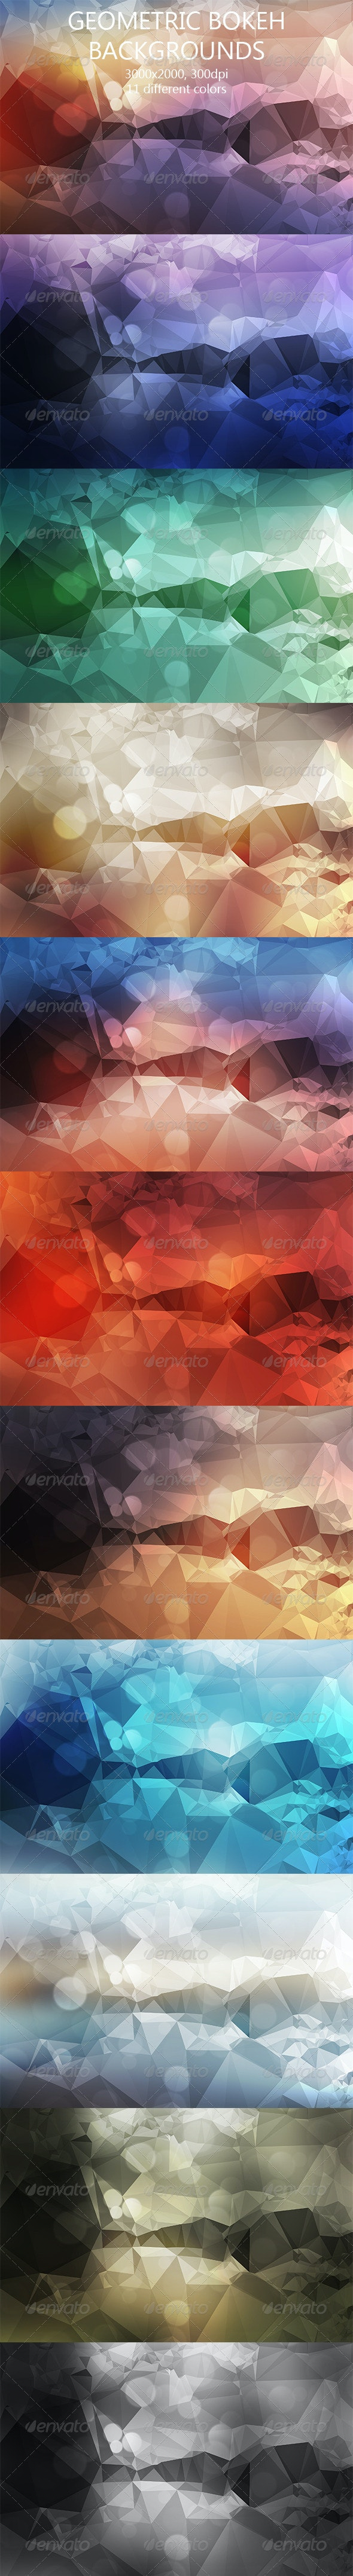 Geometric Bokeh Backgrounds  - Abstract Backgrounds